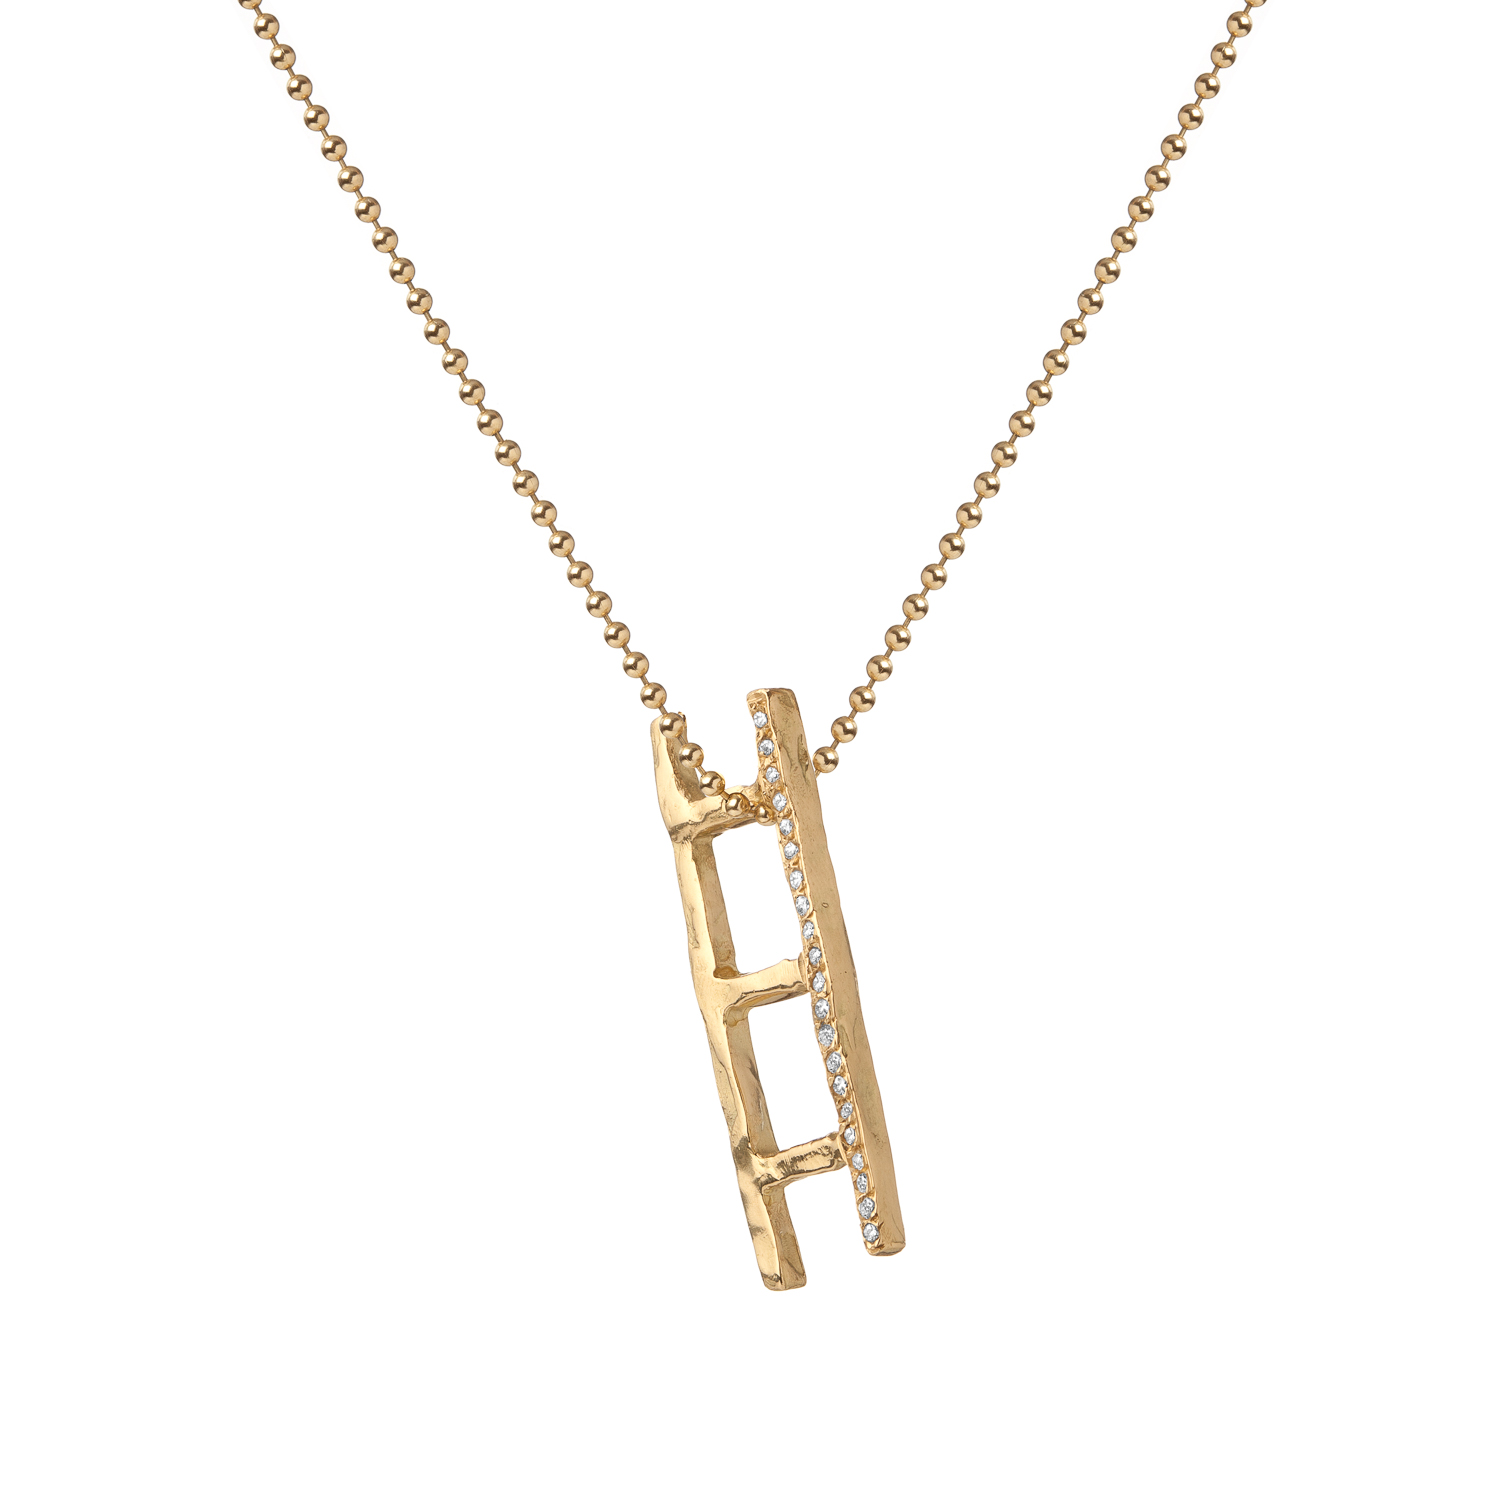 Ladder | 18k gold and white diamonds